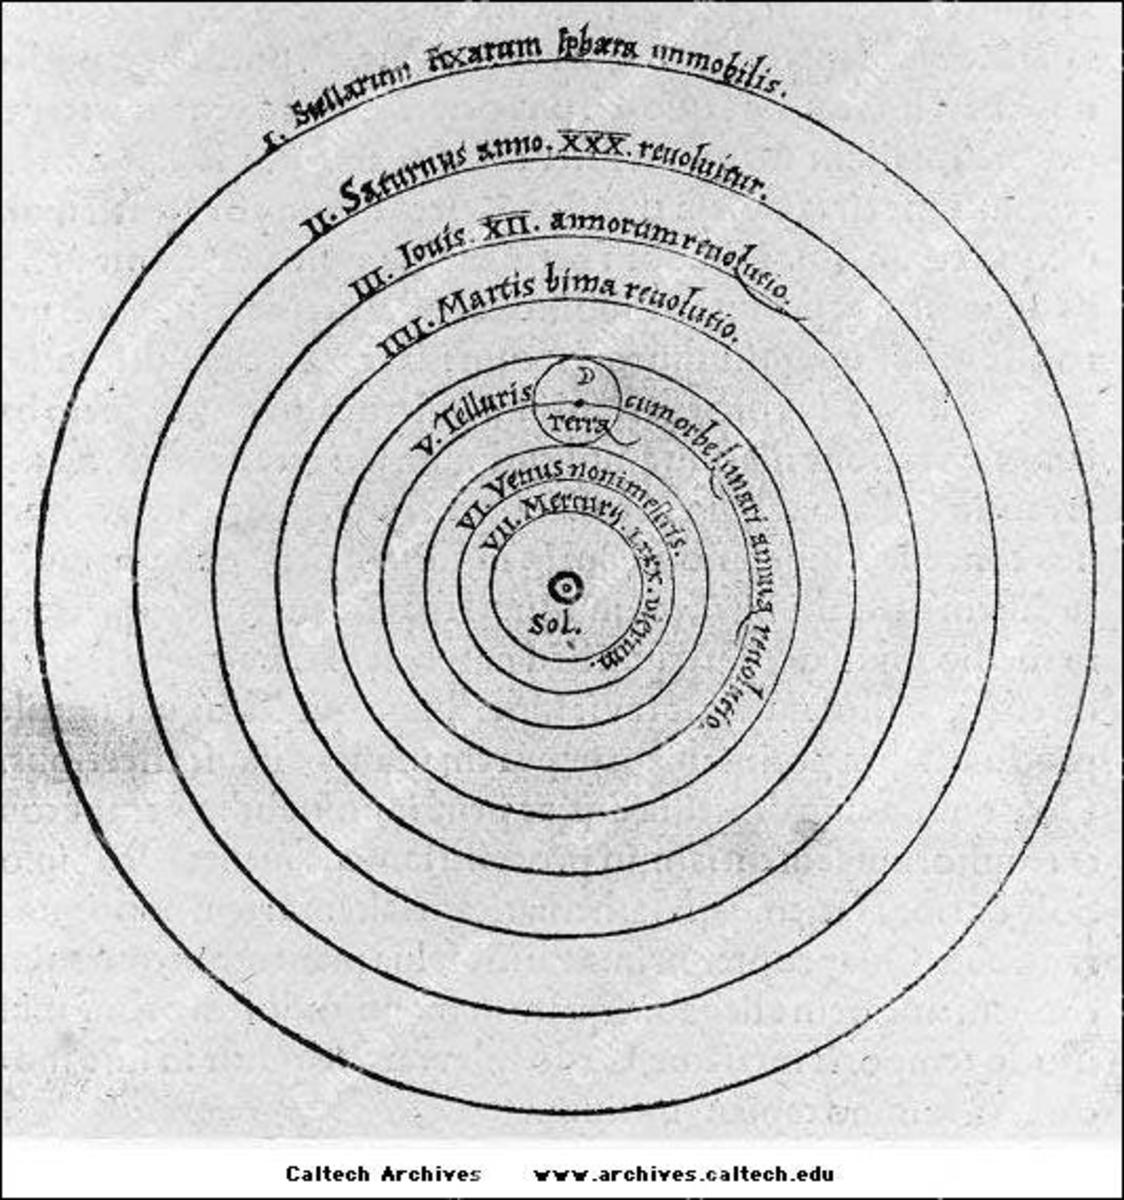 Copernican Heliocentric Model of the Universe (1543)